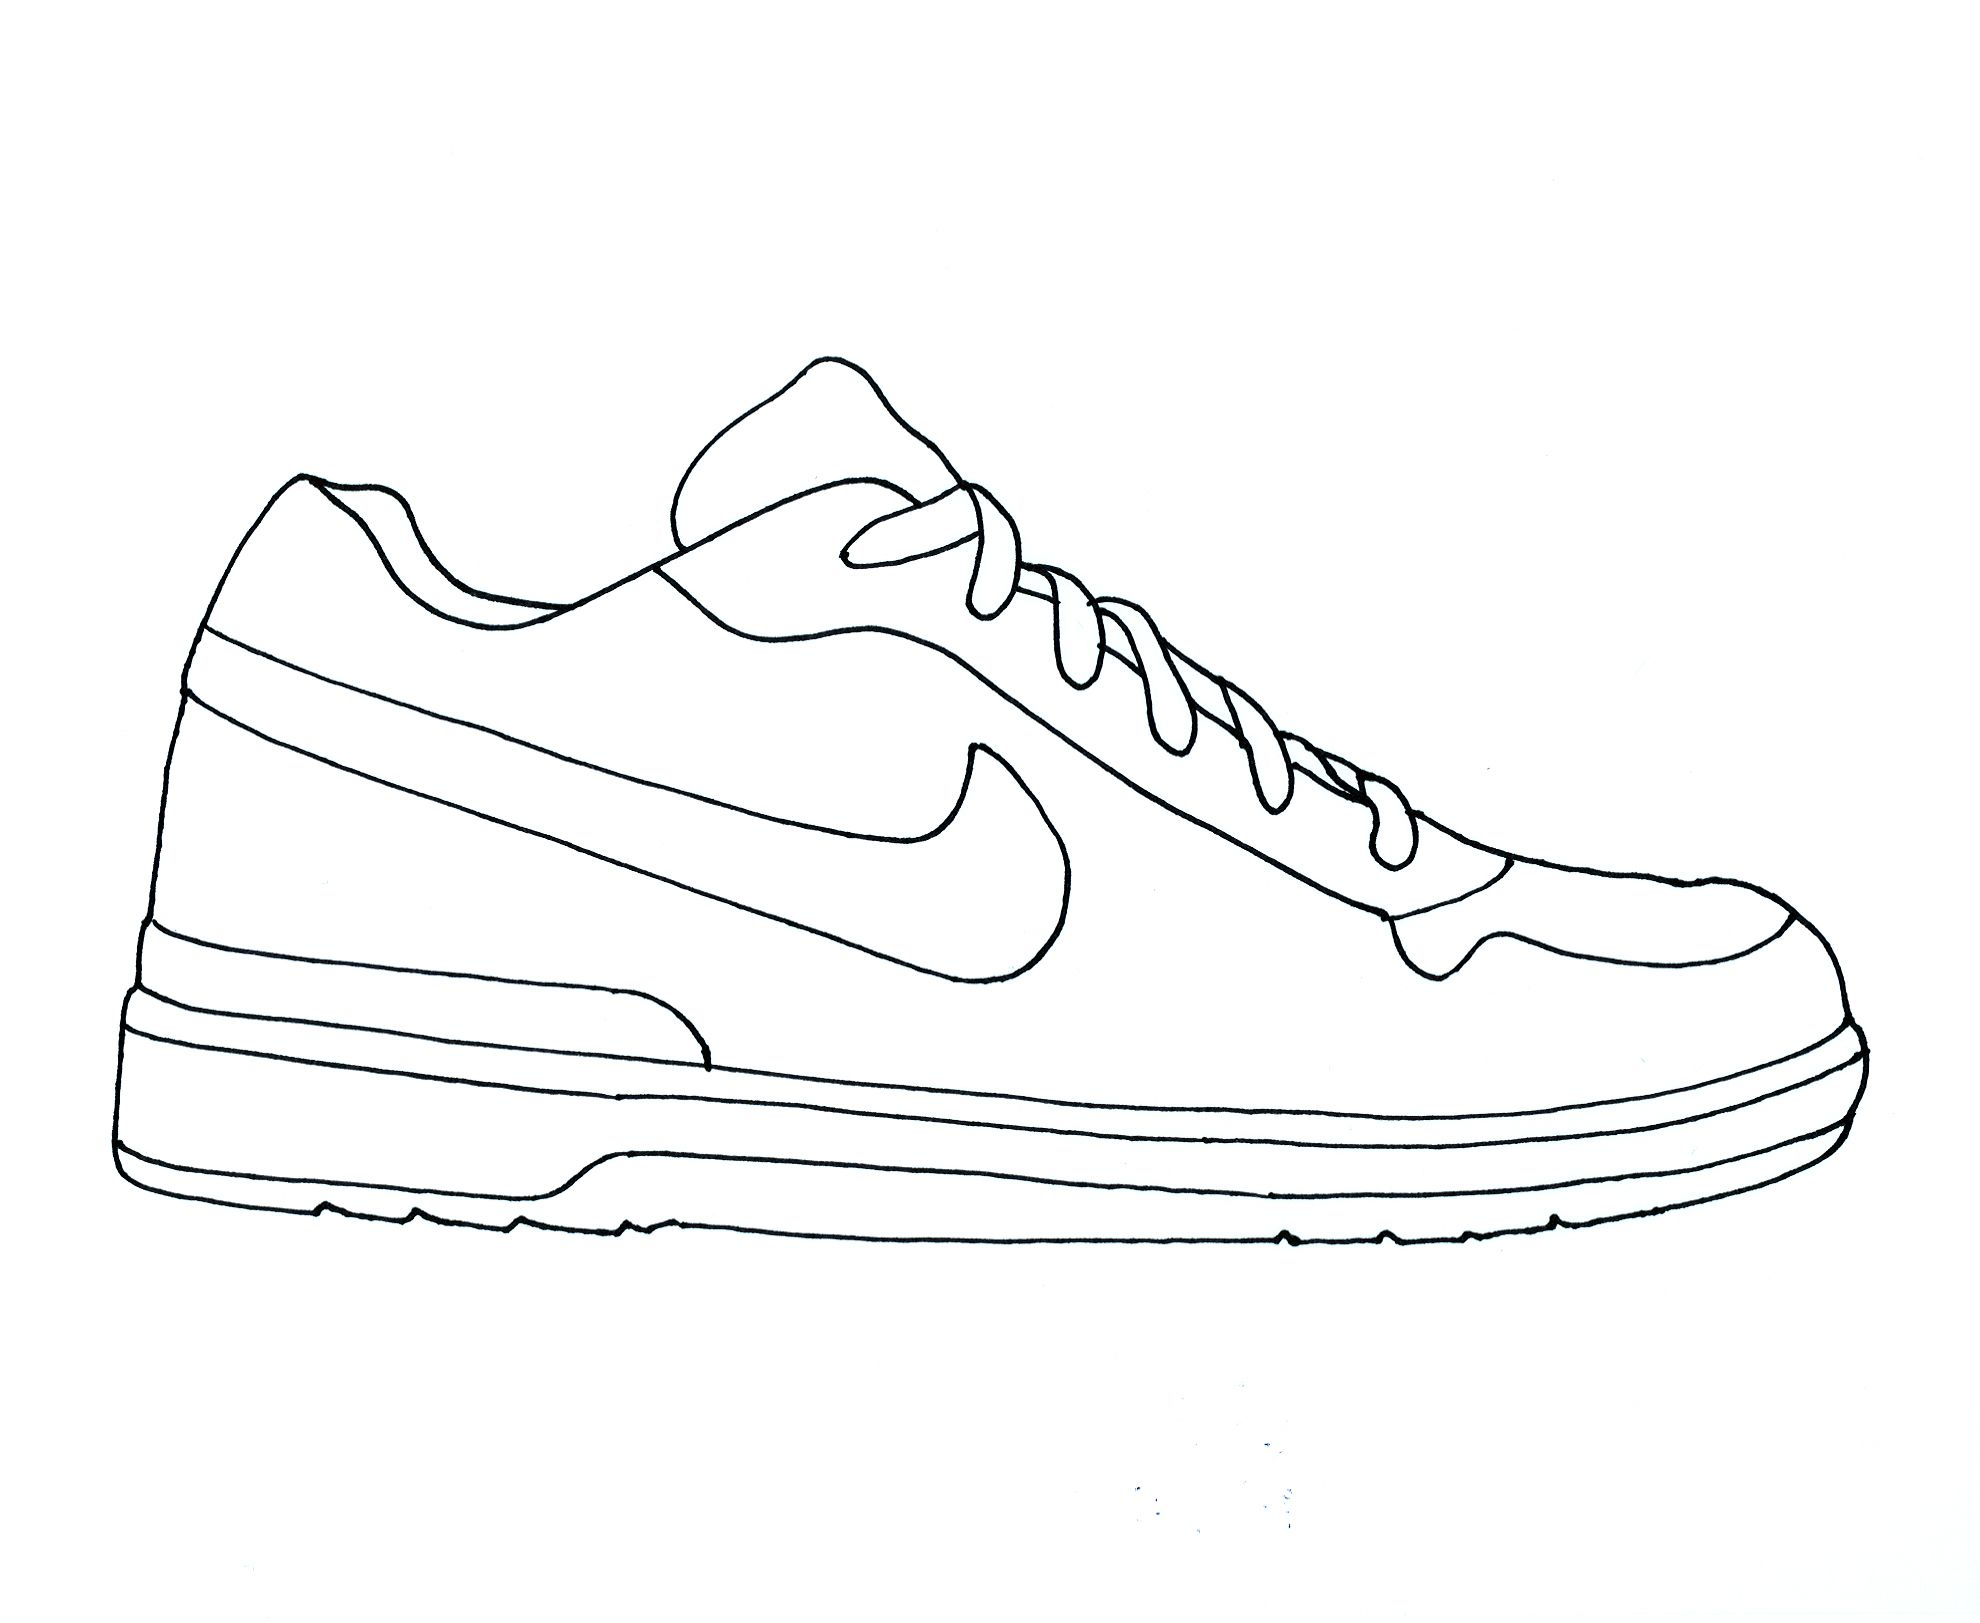 Tennis shoes coloring pages - Nike Air Jordan Clipart